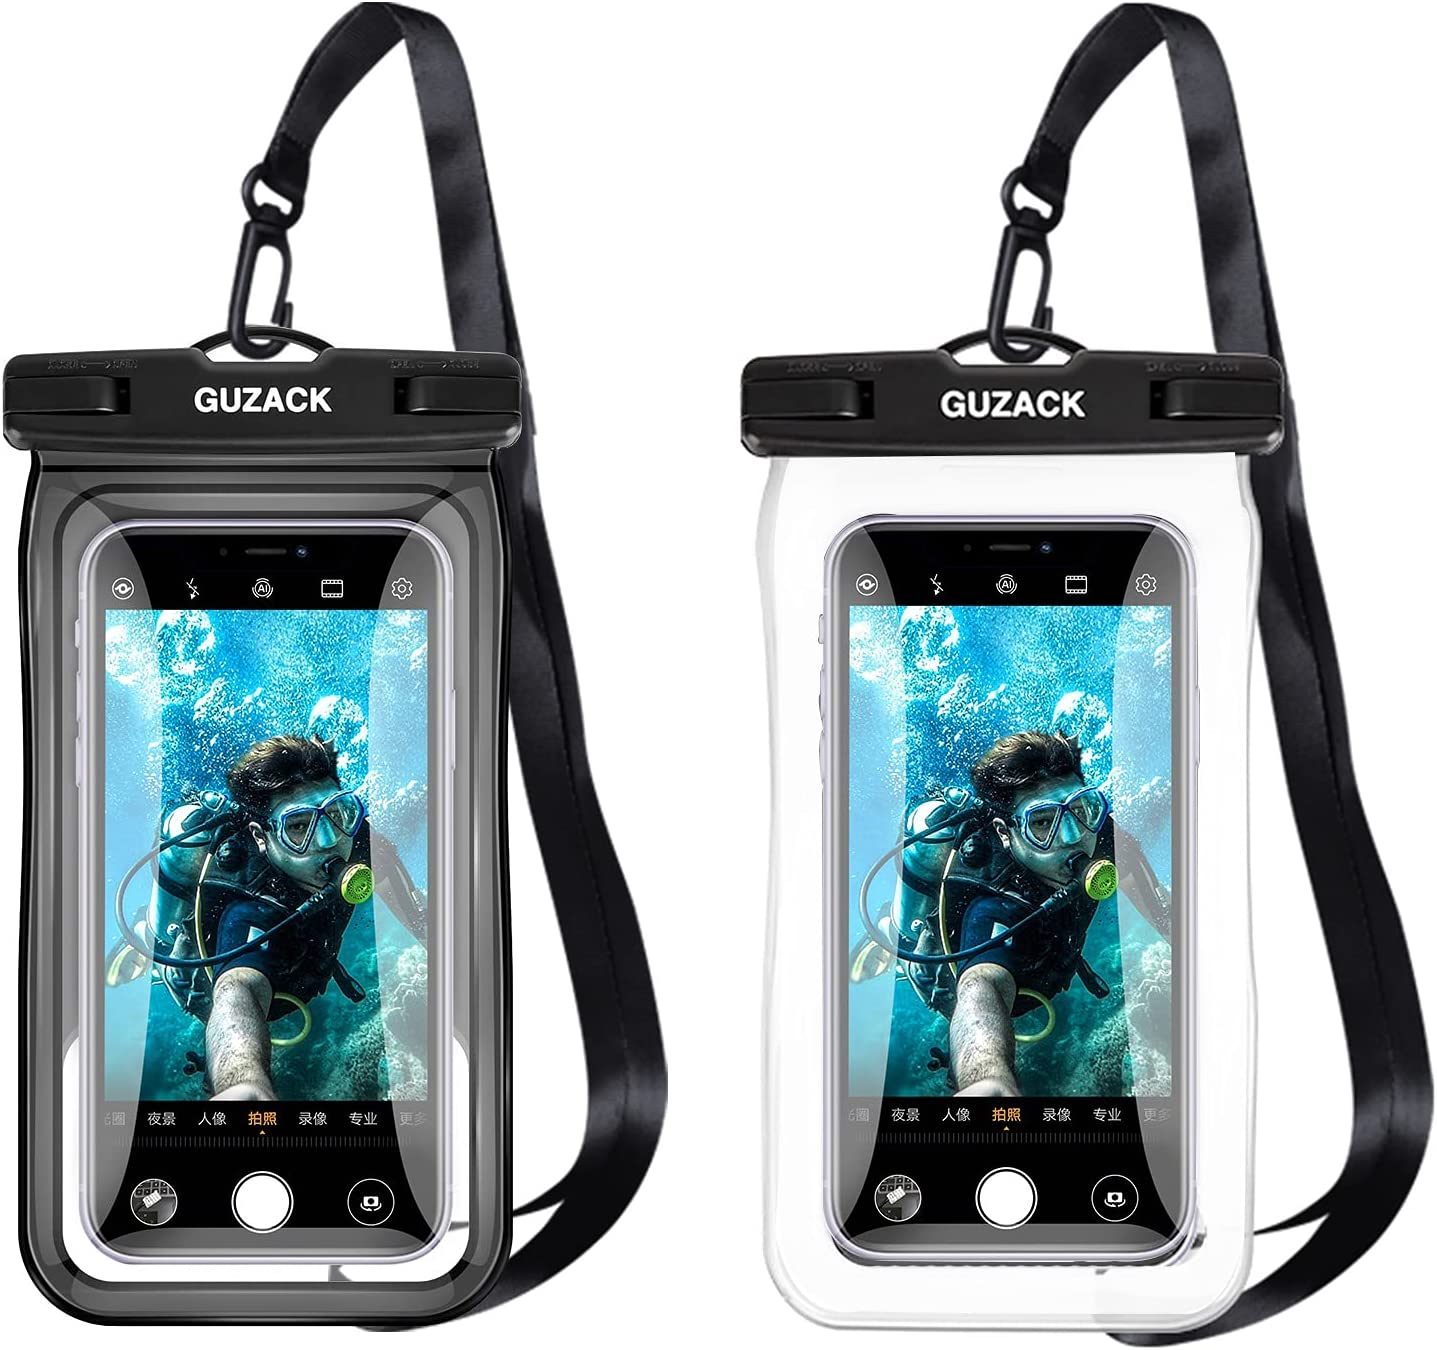 2 Pieces of Waterproof Mobile Phone Case, IPX8 Waterproof Mobile Phone Dry Bag, Underwater Protective Cover, Mobile Phone Waterproof Bag Suitable for iPhone/LG/Xiaomi/Samsung, Etc. 9 to 6.9 Inches